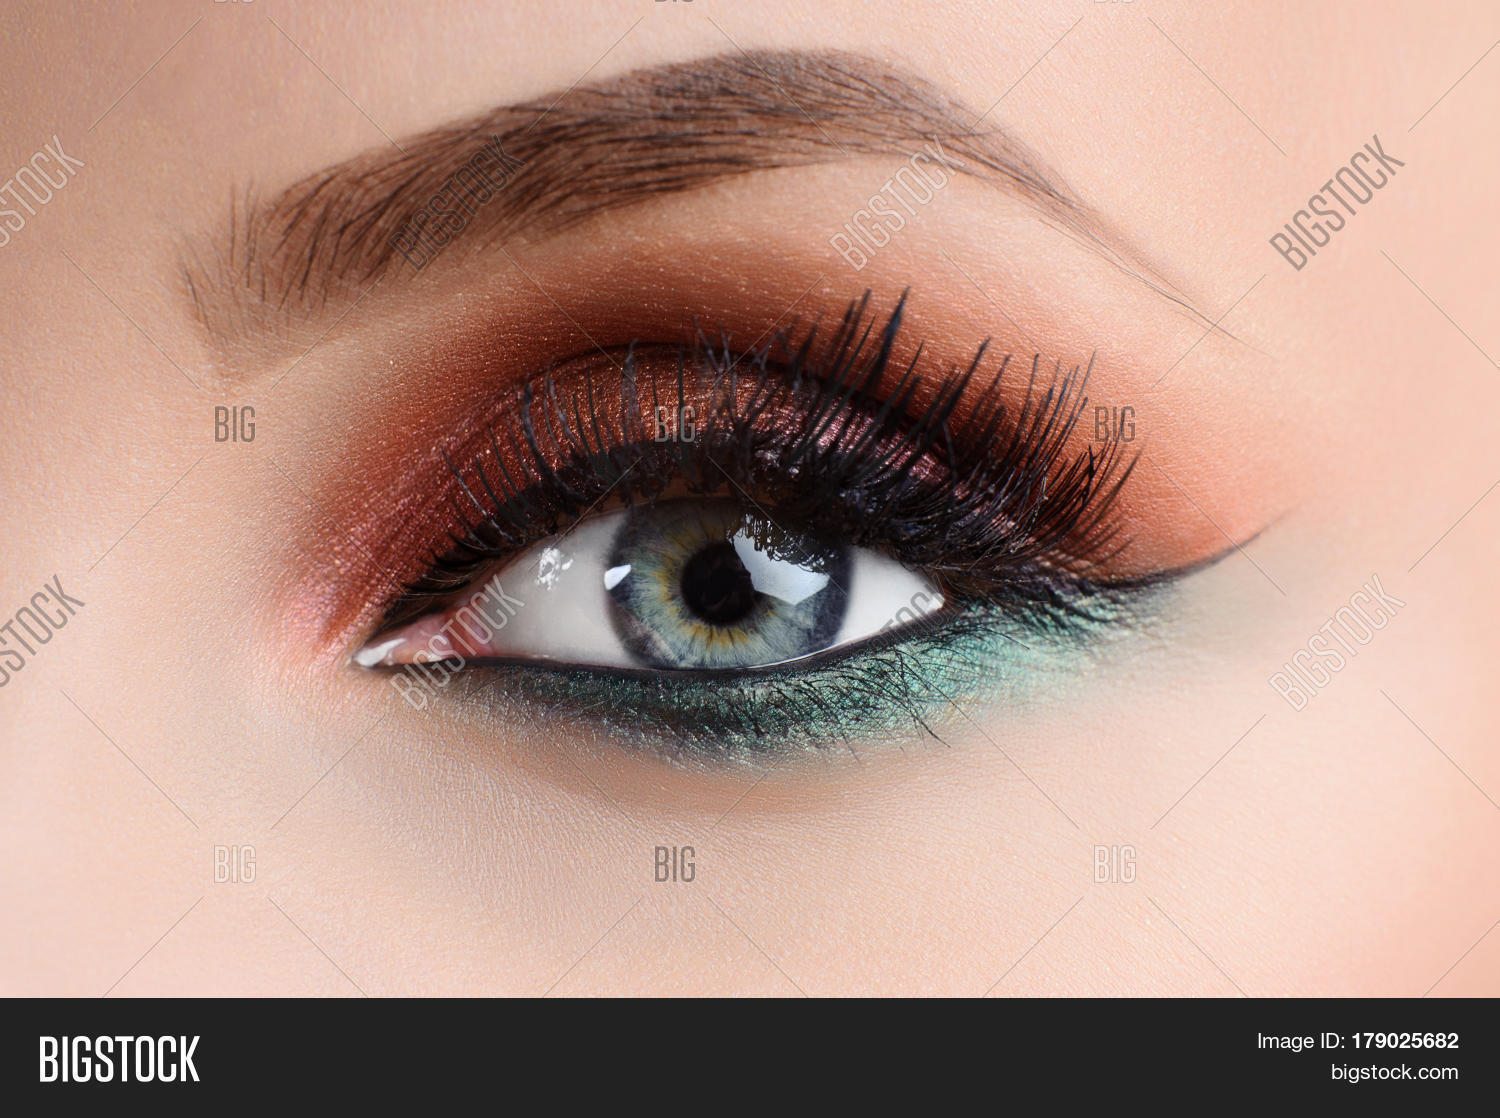 Colorful Eye Makeup Image Photo Free Trial Bigstock